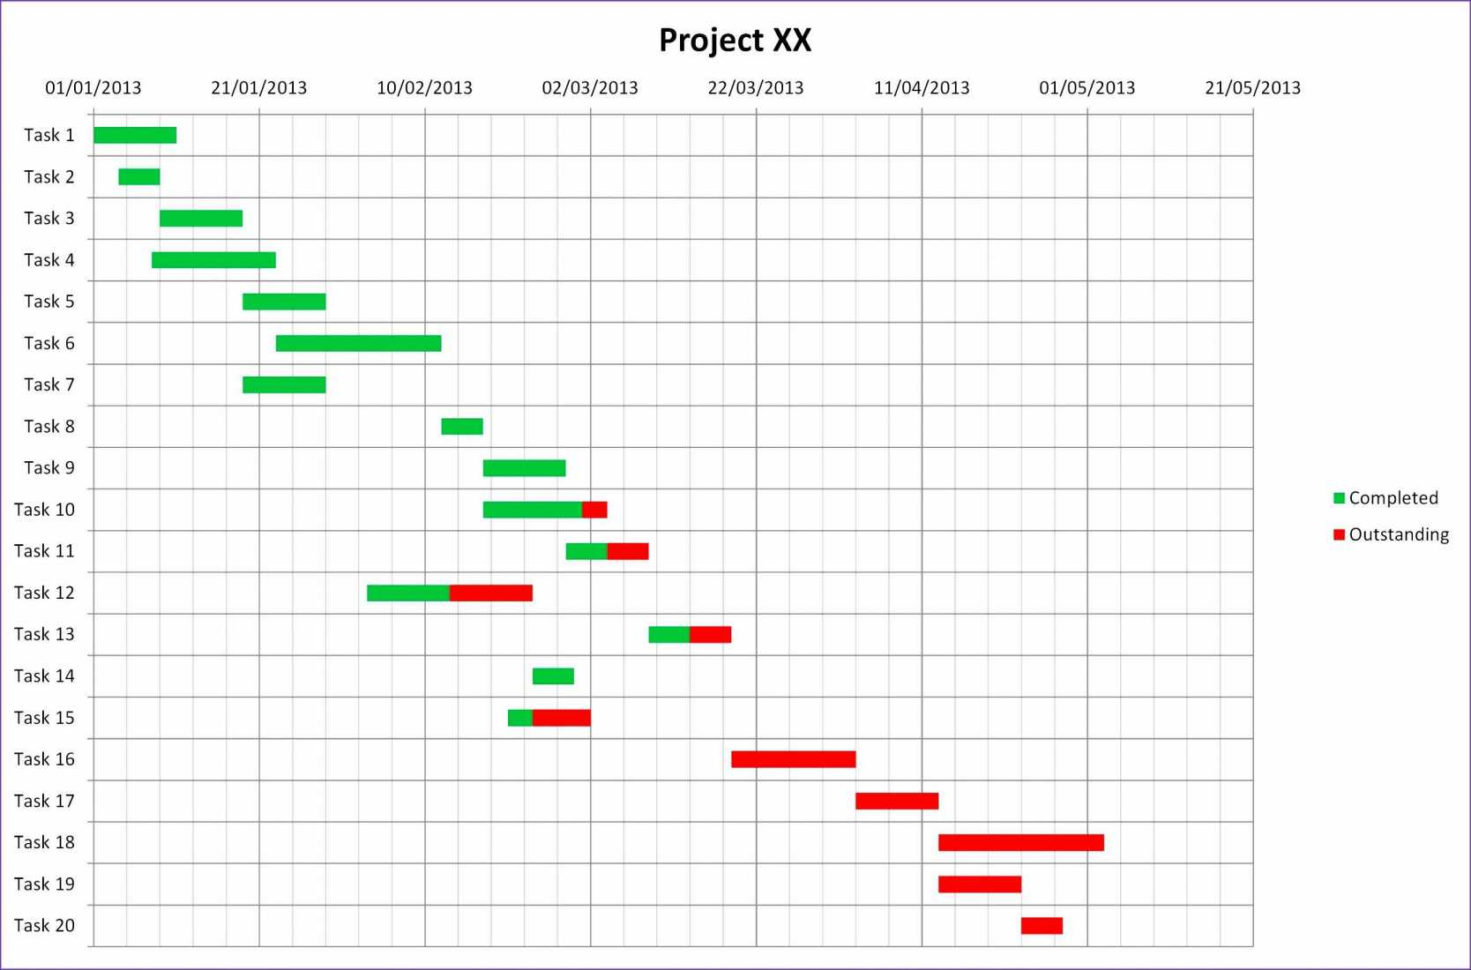 Excel 2007 Organizational Chart Template With Gantt Chart Google For Free Gantt Chart Template For Mac Excel